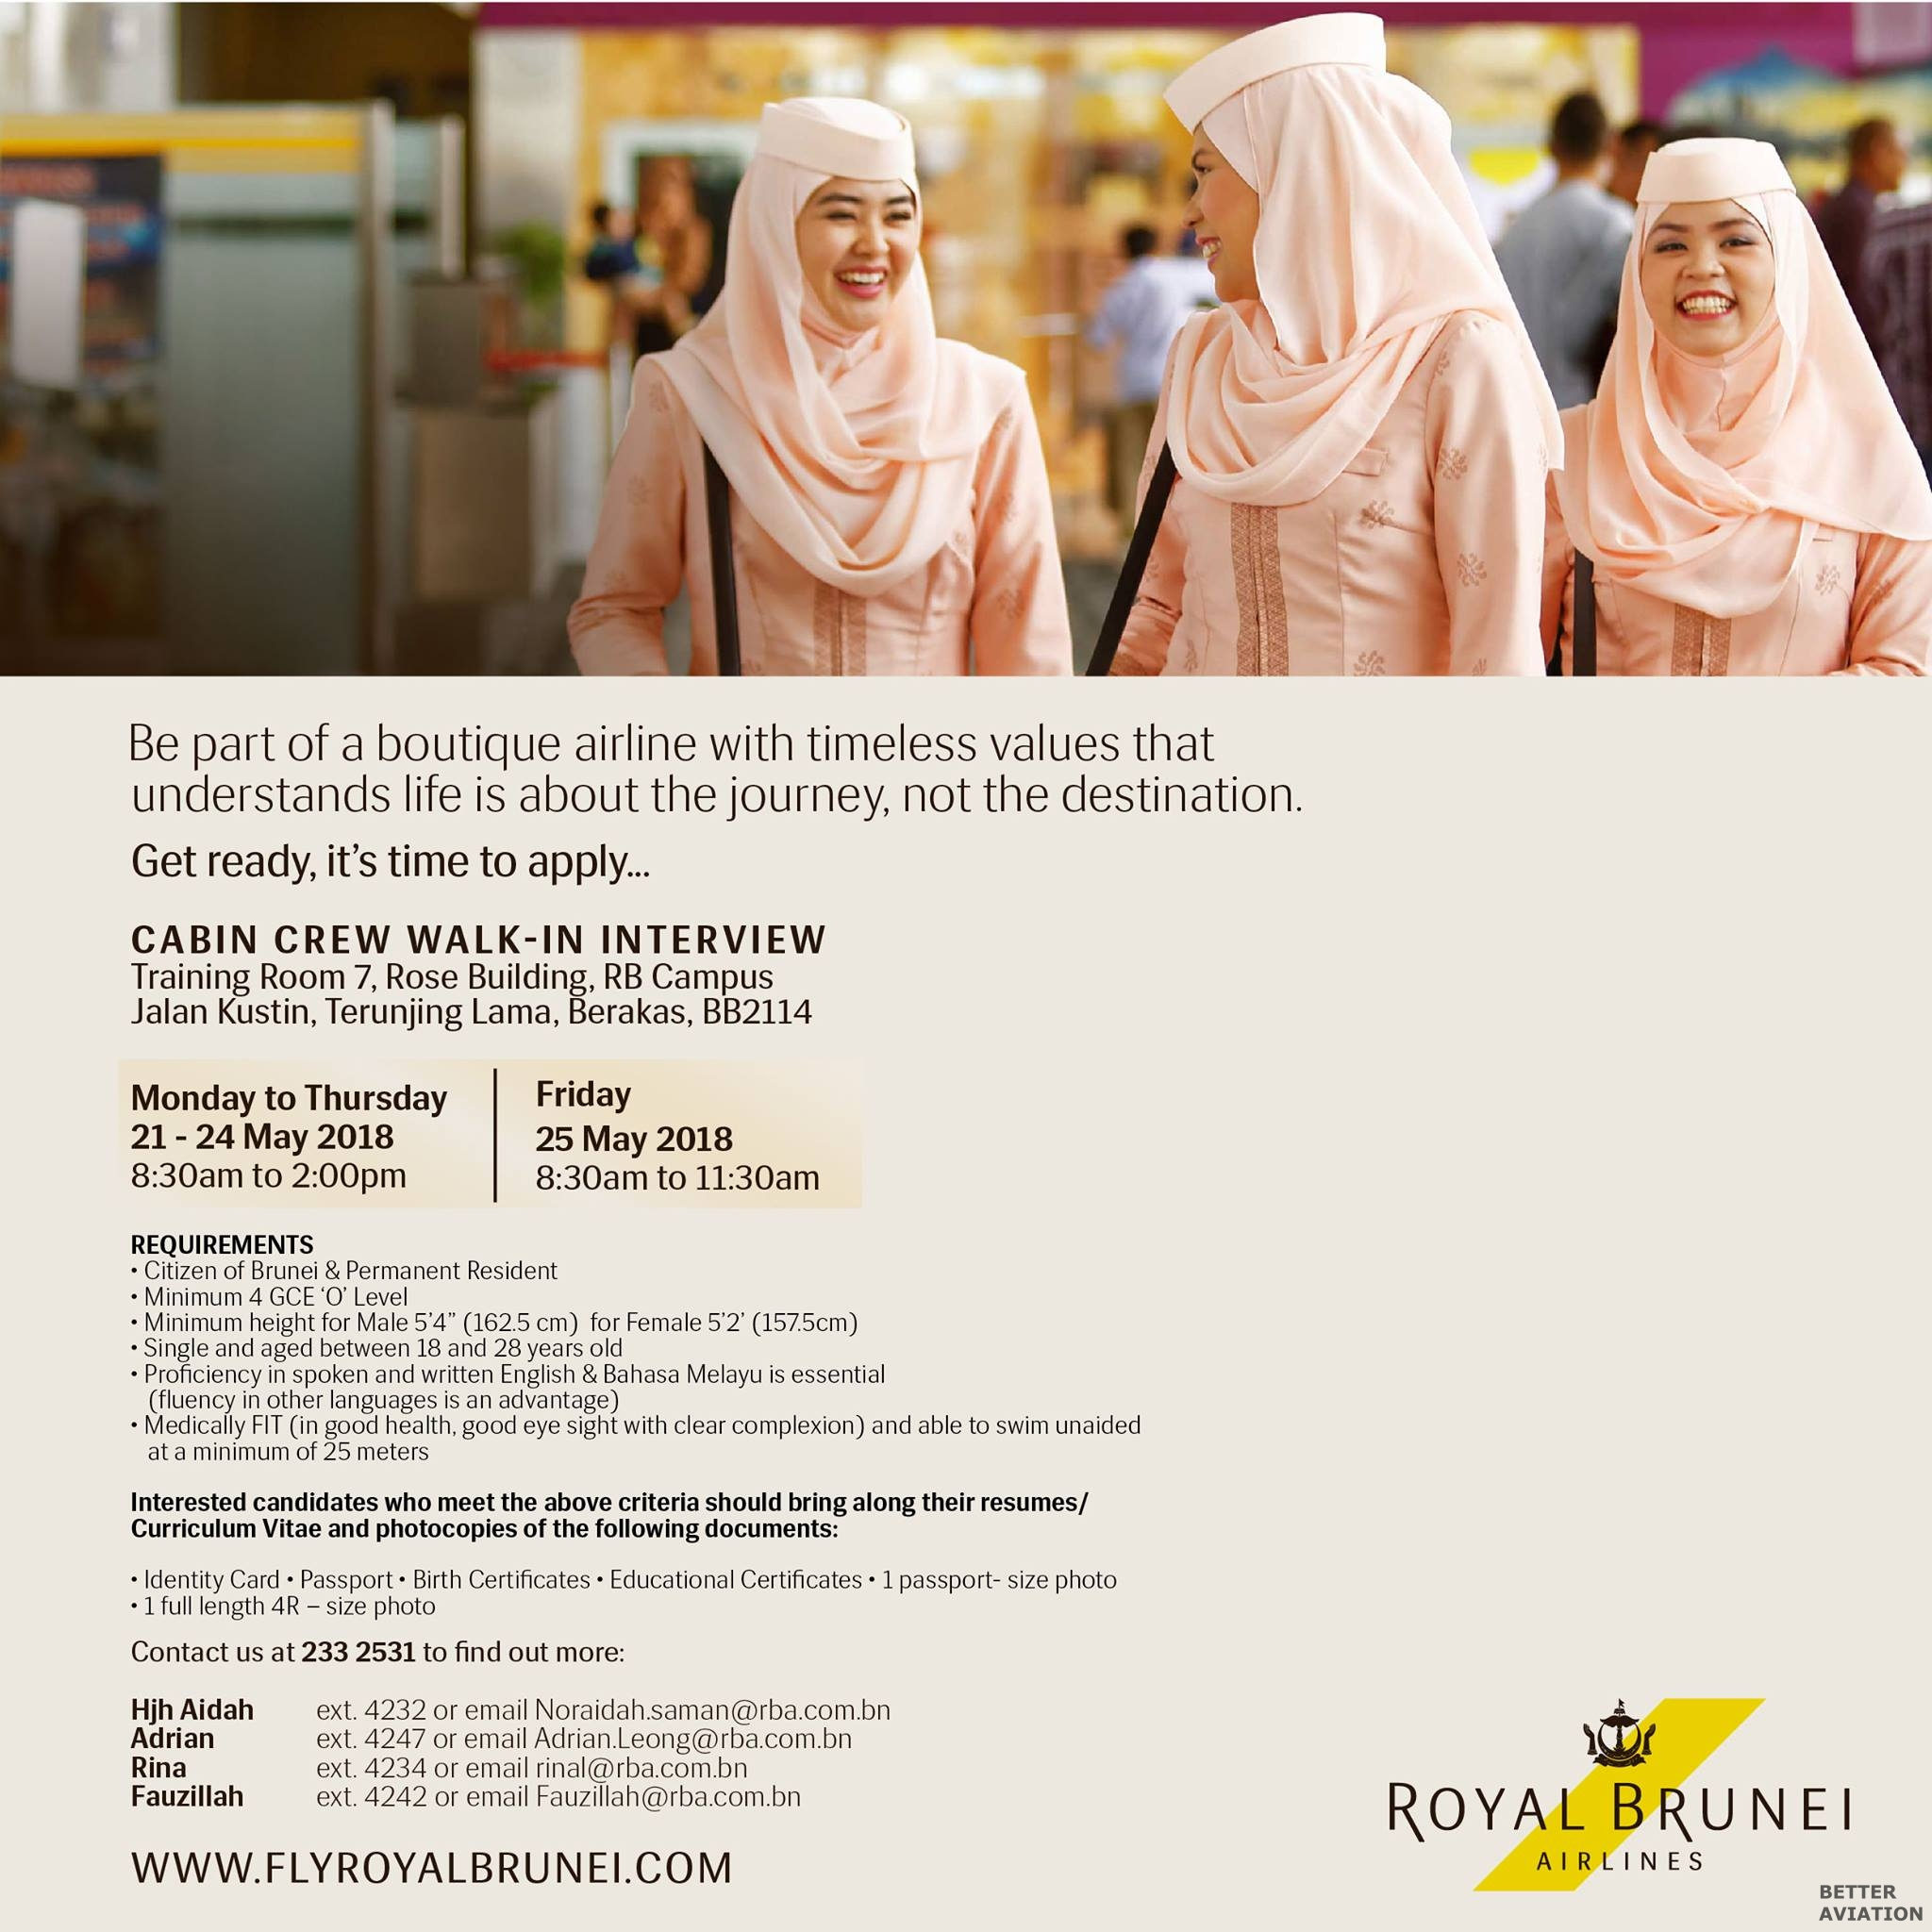 royal brunei airlines cabin crew walk-in interview  may 2018